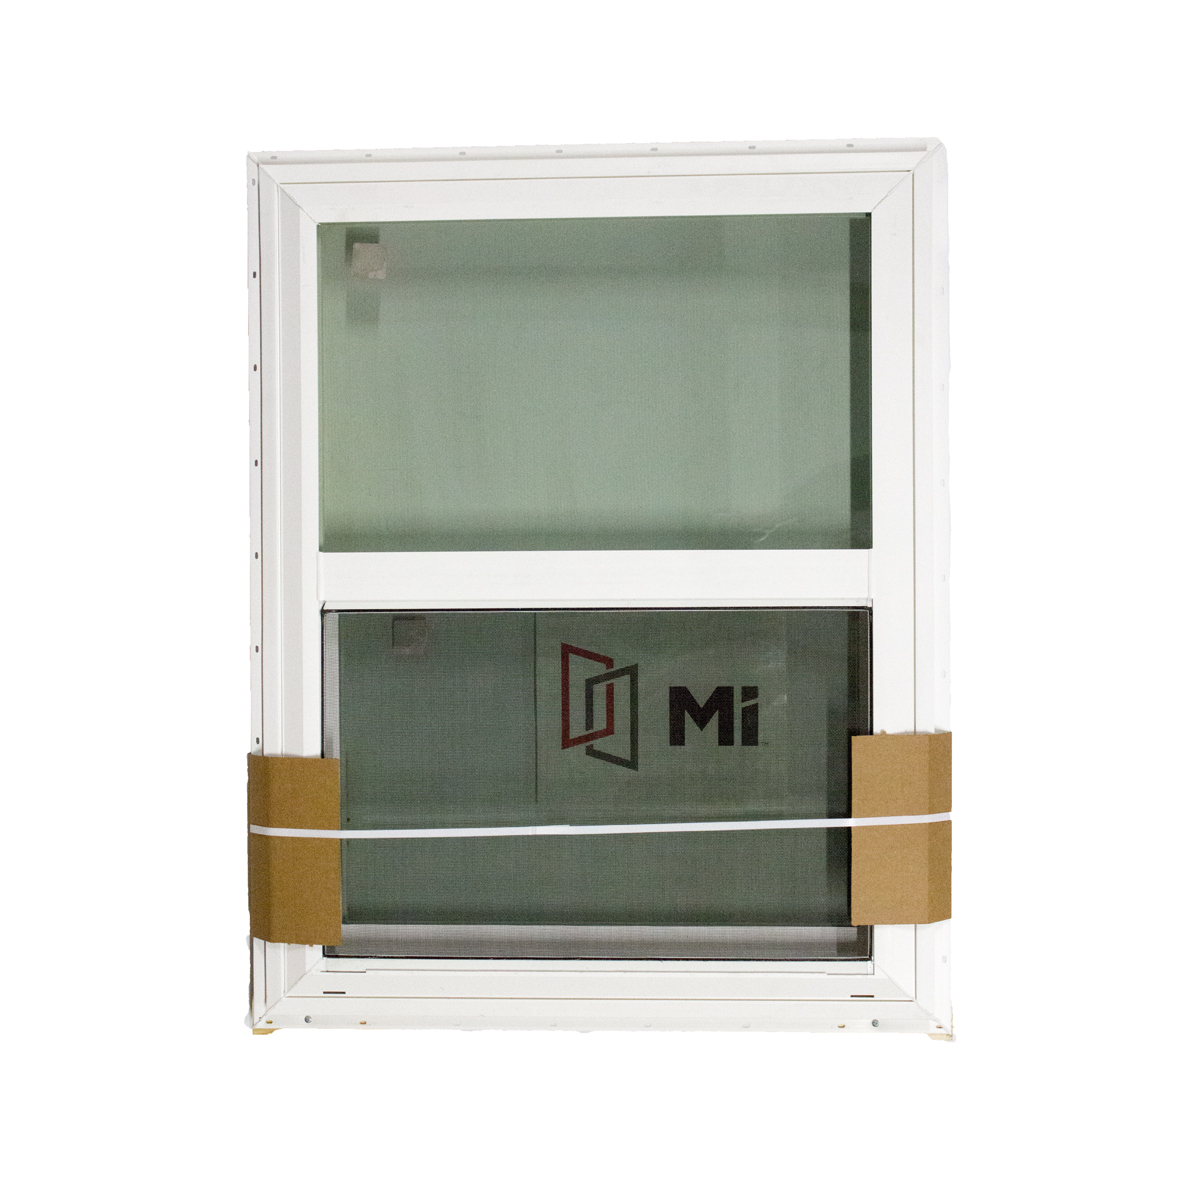 hight resolution of 36 x 48 metal industry new construction clear windows